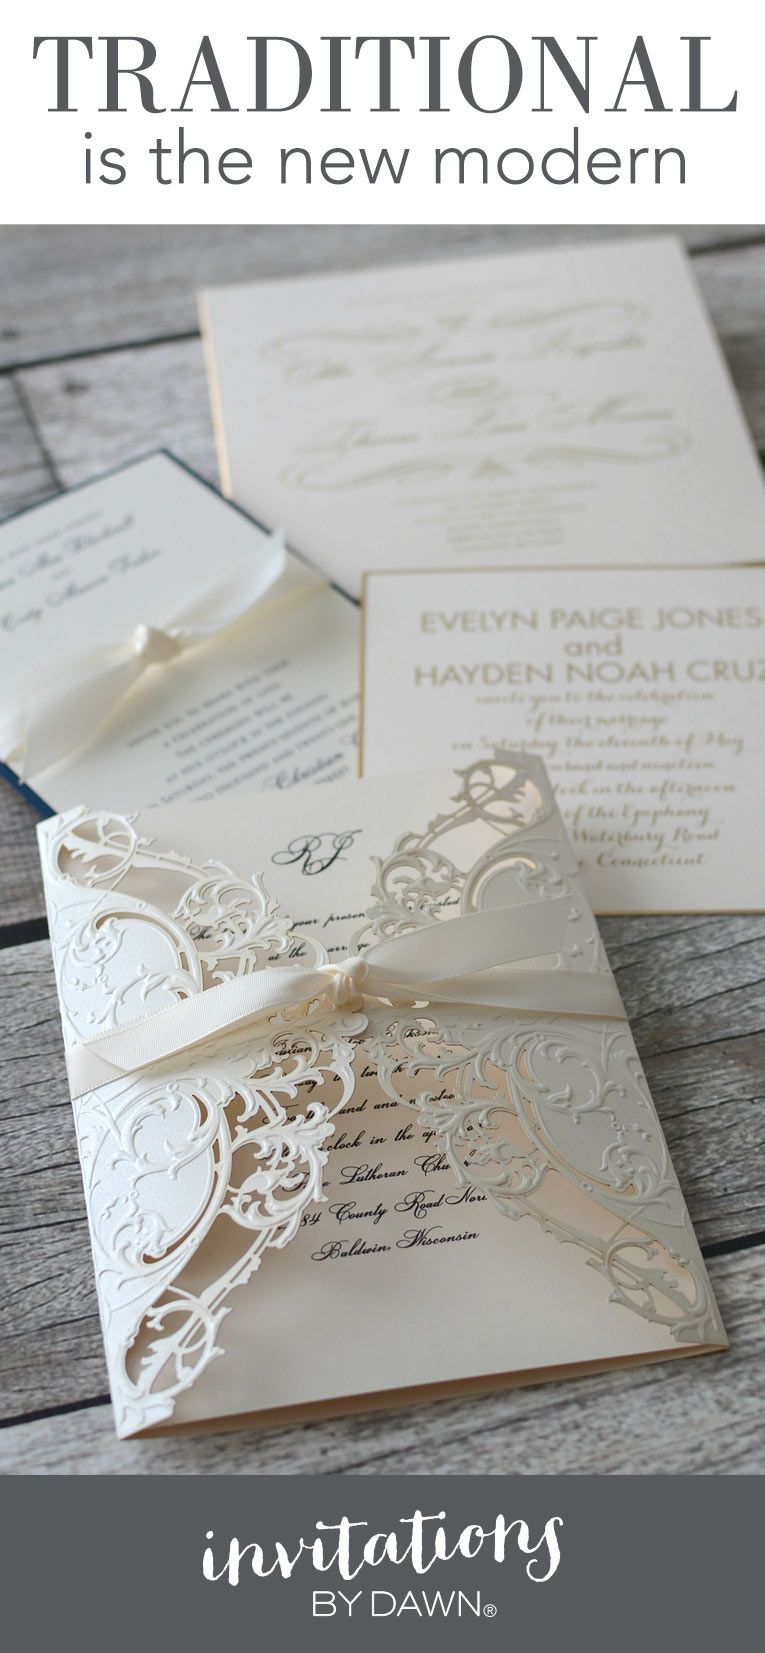 sample of wedding invitation letter%0A Are you surprised  So were we  But there is no mistaking that traditional  wedding